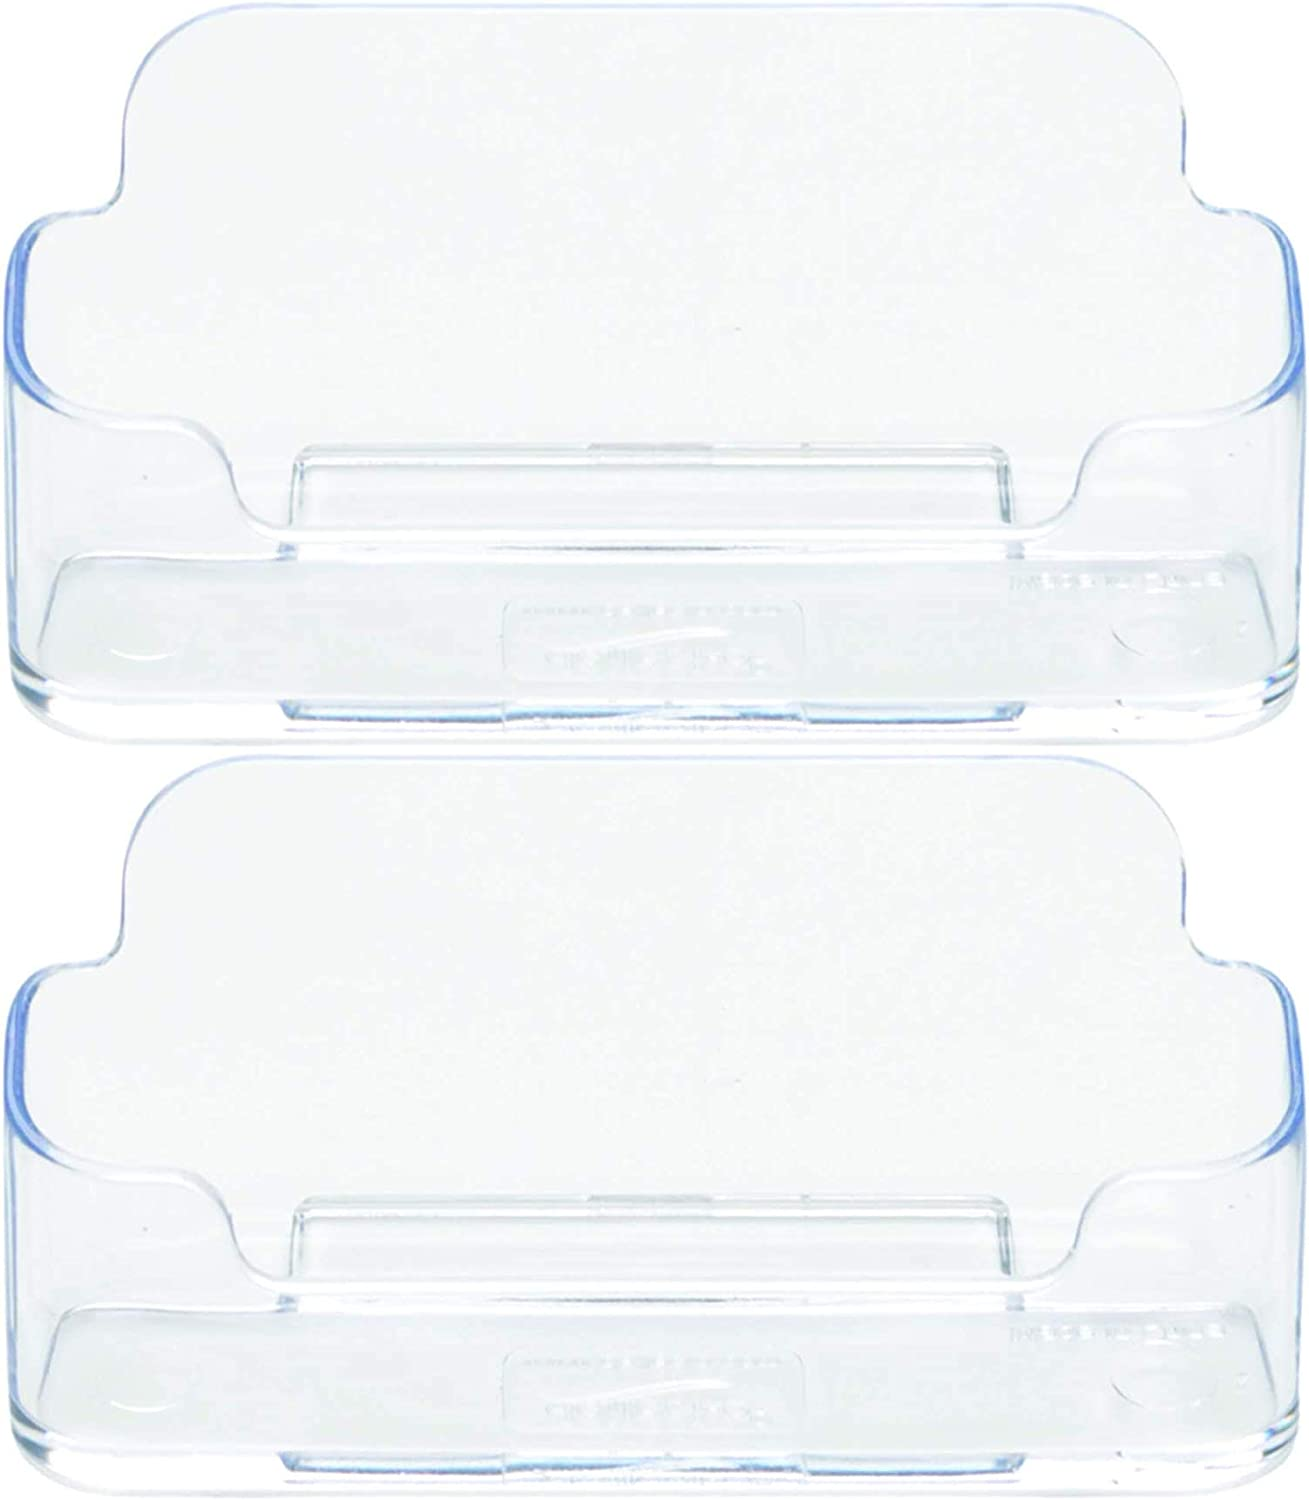 Deflecto Business Card Holder store Single x 3-3 4